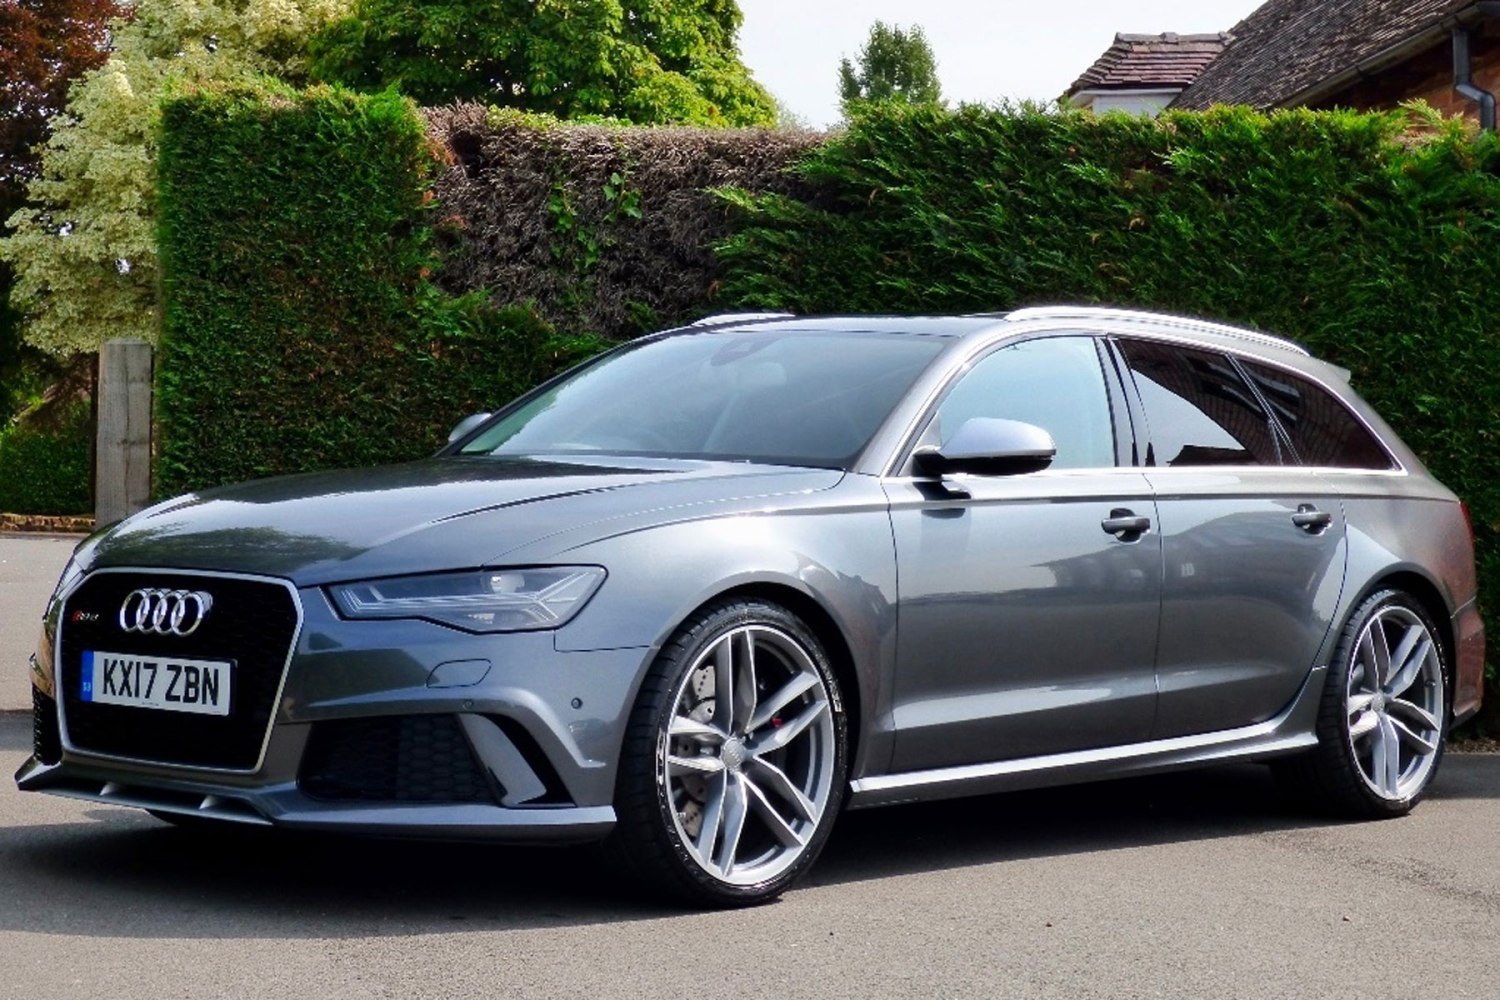 Audi For Sale >> Prince Harry S Audi Rs6 Avant For Sale On Auto Trader